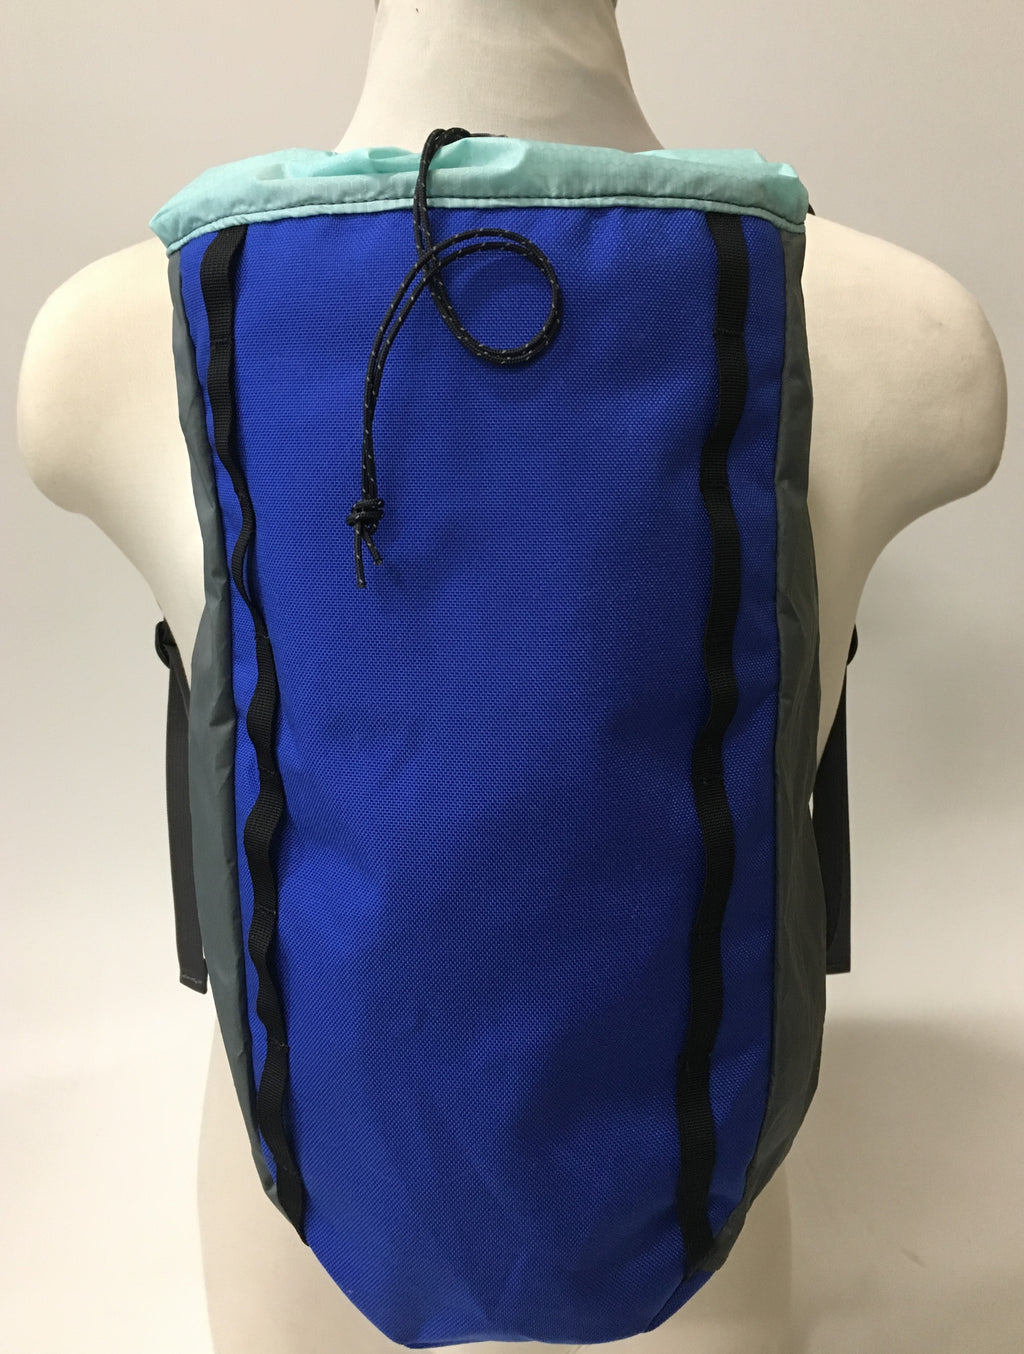 LUSB171 Ultralight Day Pack Blue/Grey Front View